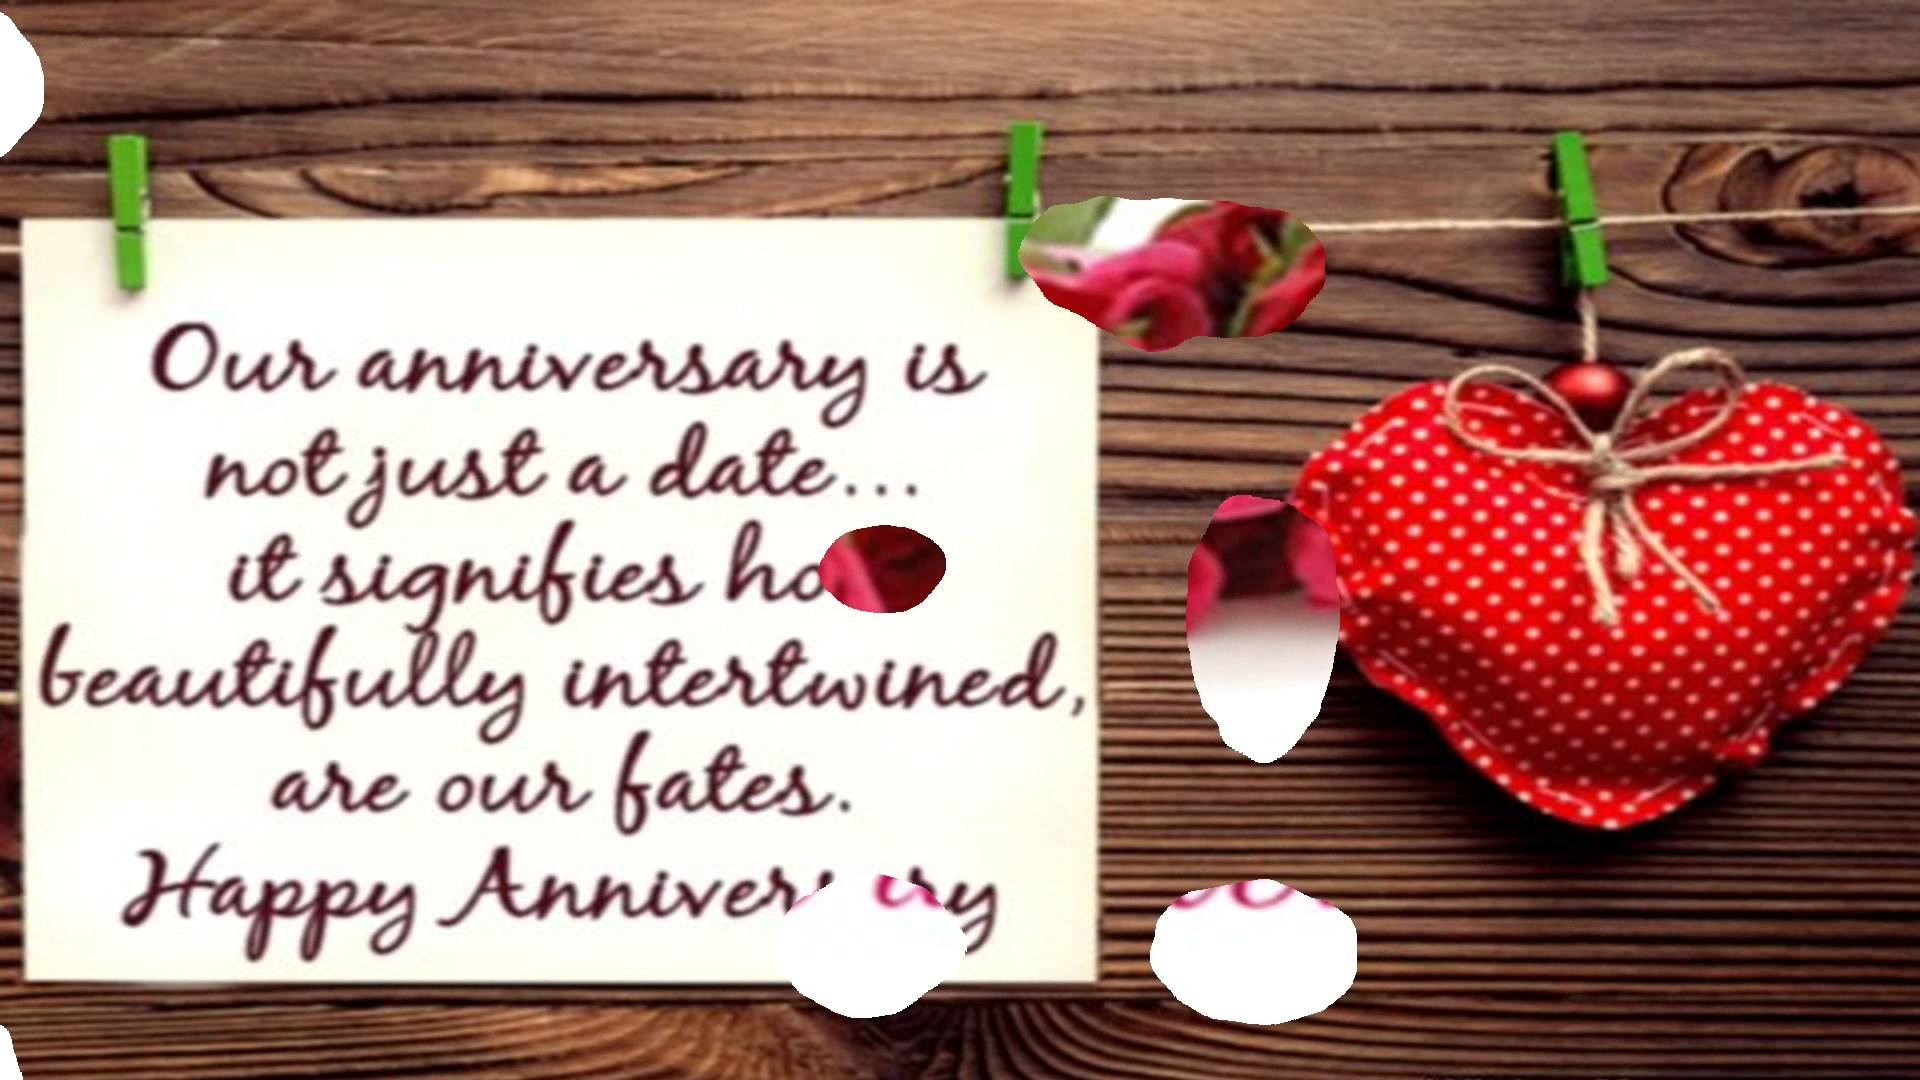 Anniversary Wishes Quotes Pictures Images Graphics For Facebook Whatsapp